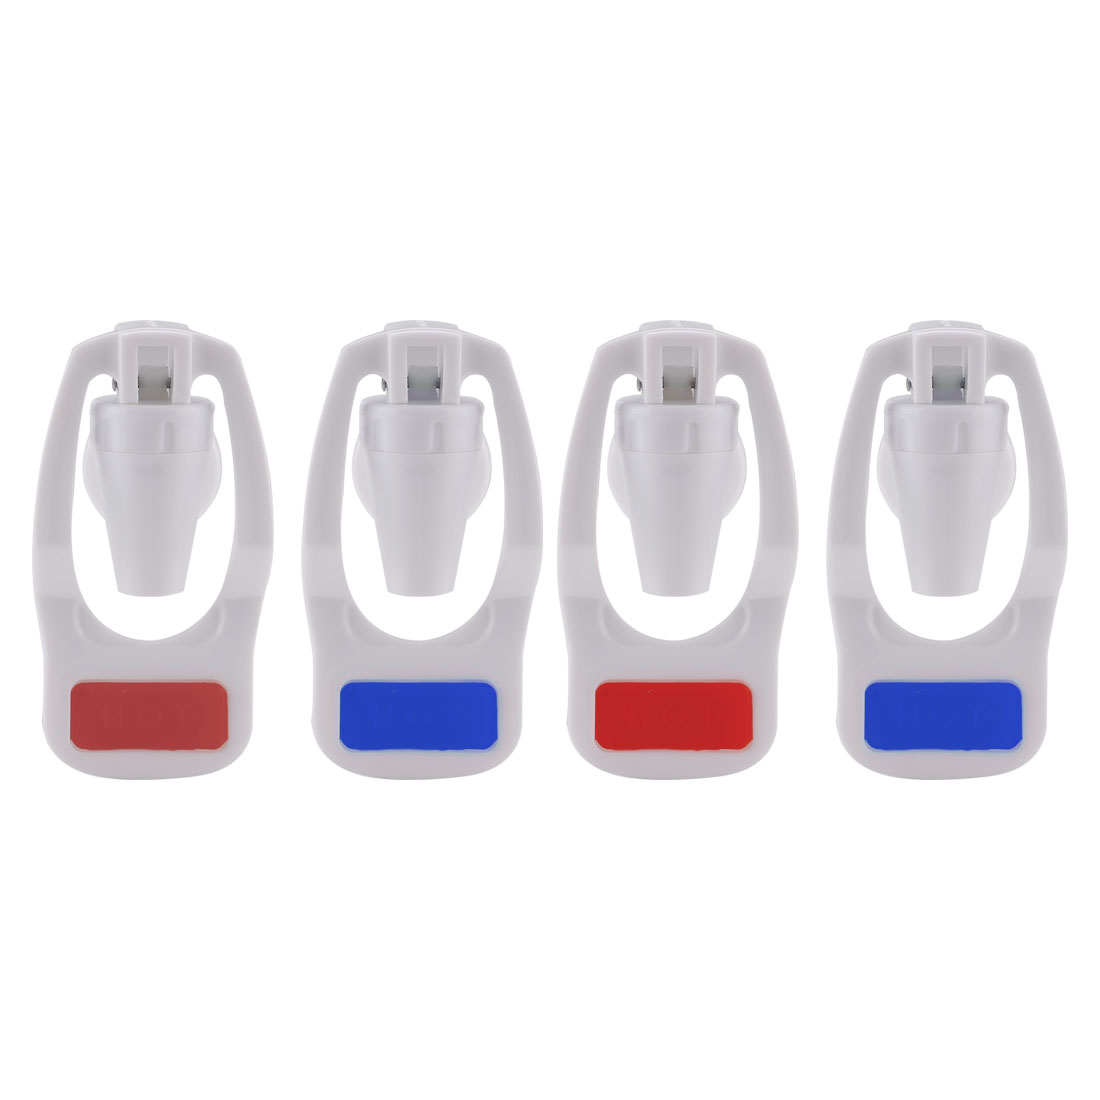 4pcs Plastic Water Cooler Hot Cold Faucet Water Dispenser Replacement Red/Blue